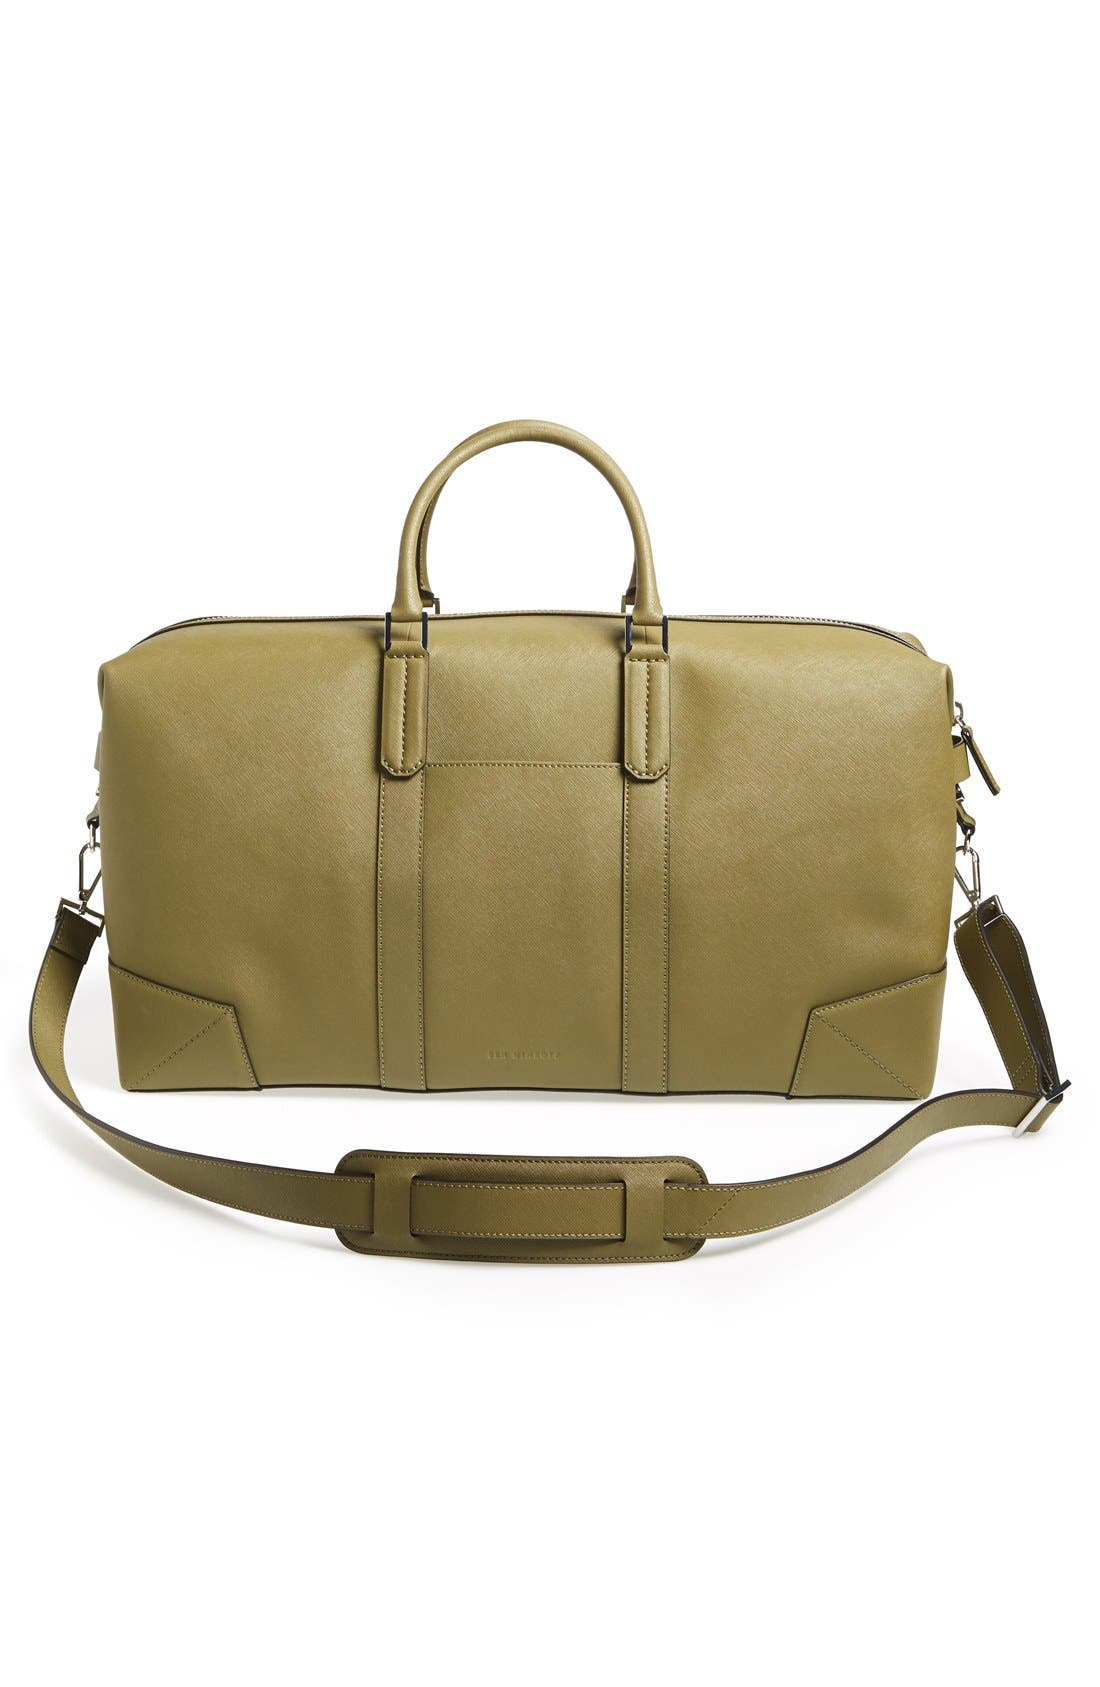 Alternate Image 3  - Ben Minkoff 'Wythe' Weekend Size Saffiano Leather Duffel Bag